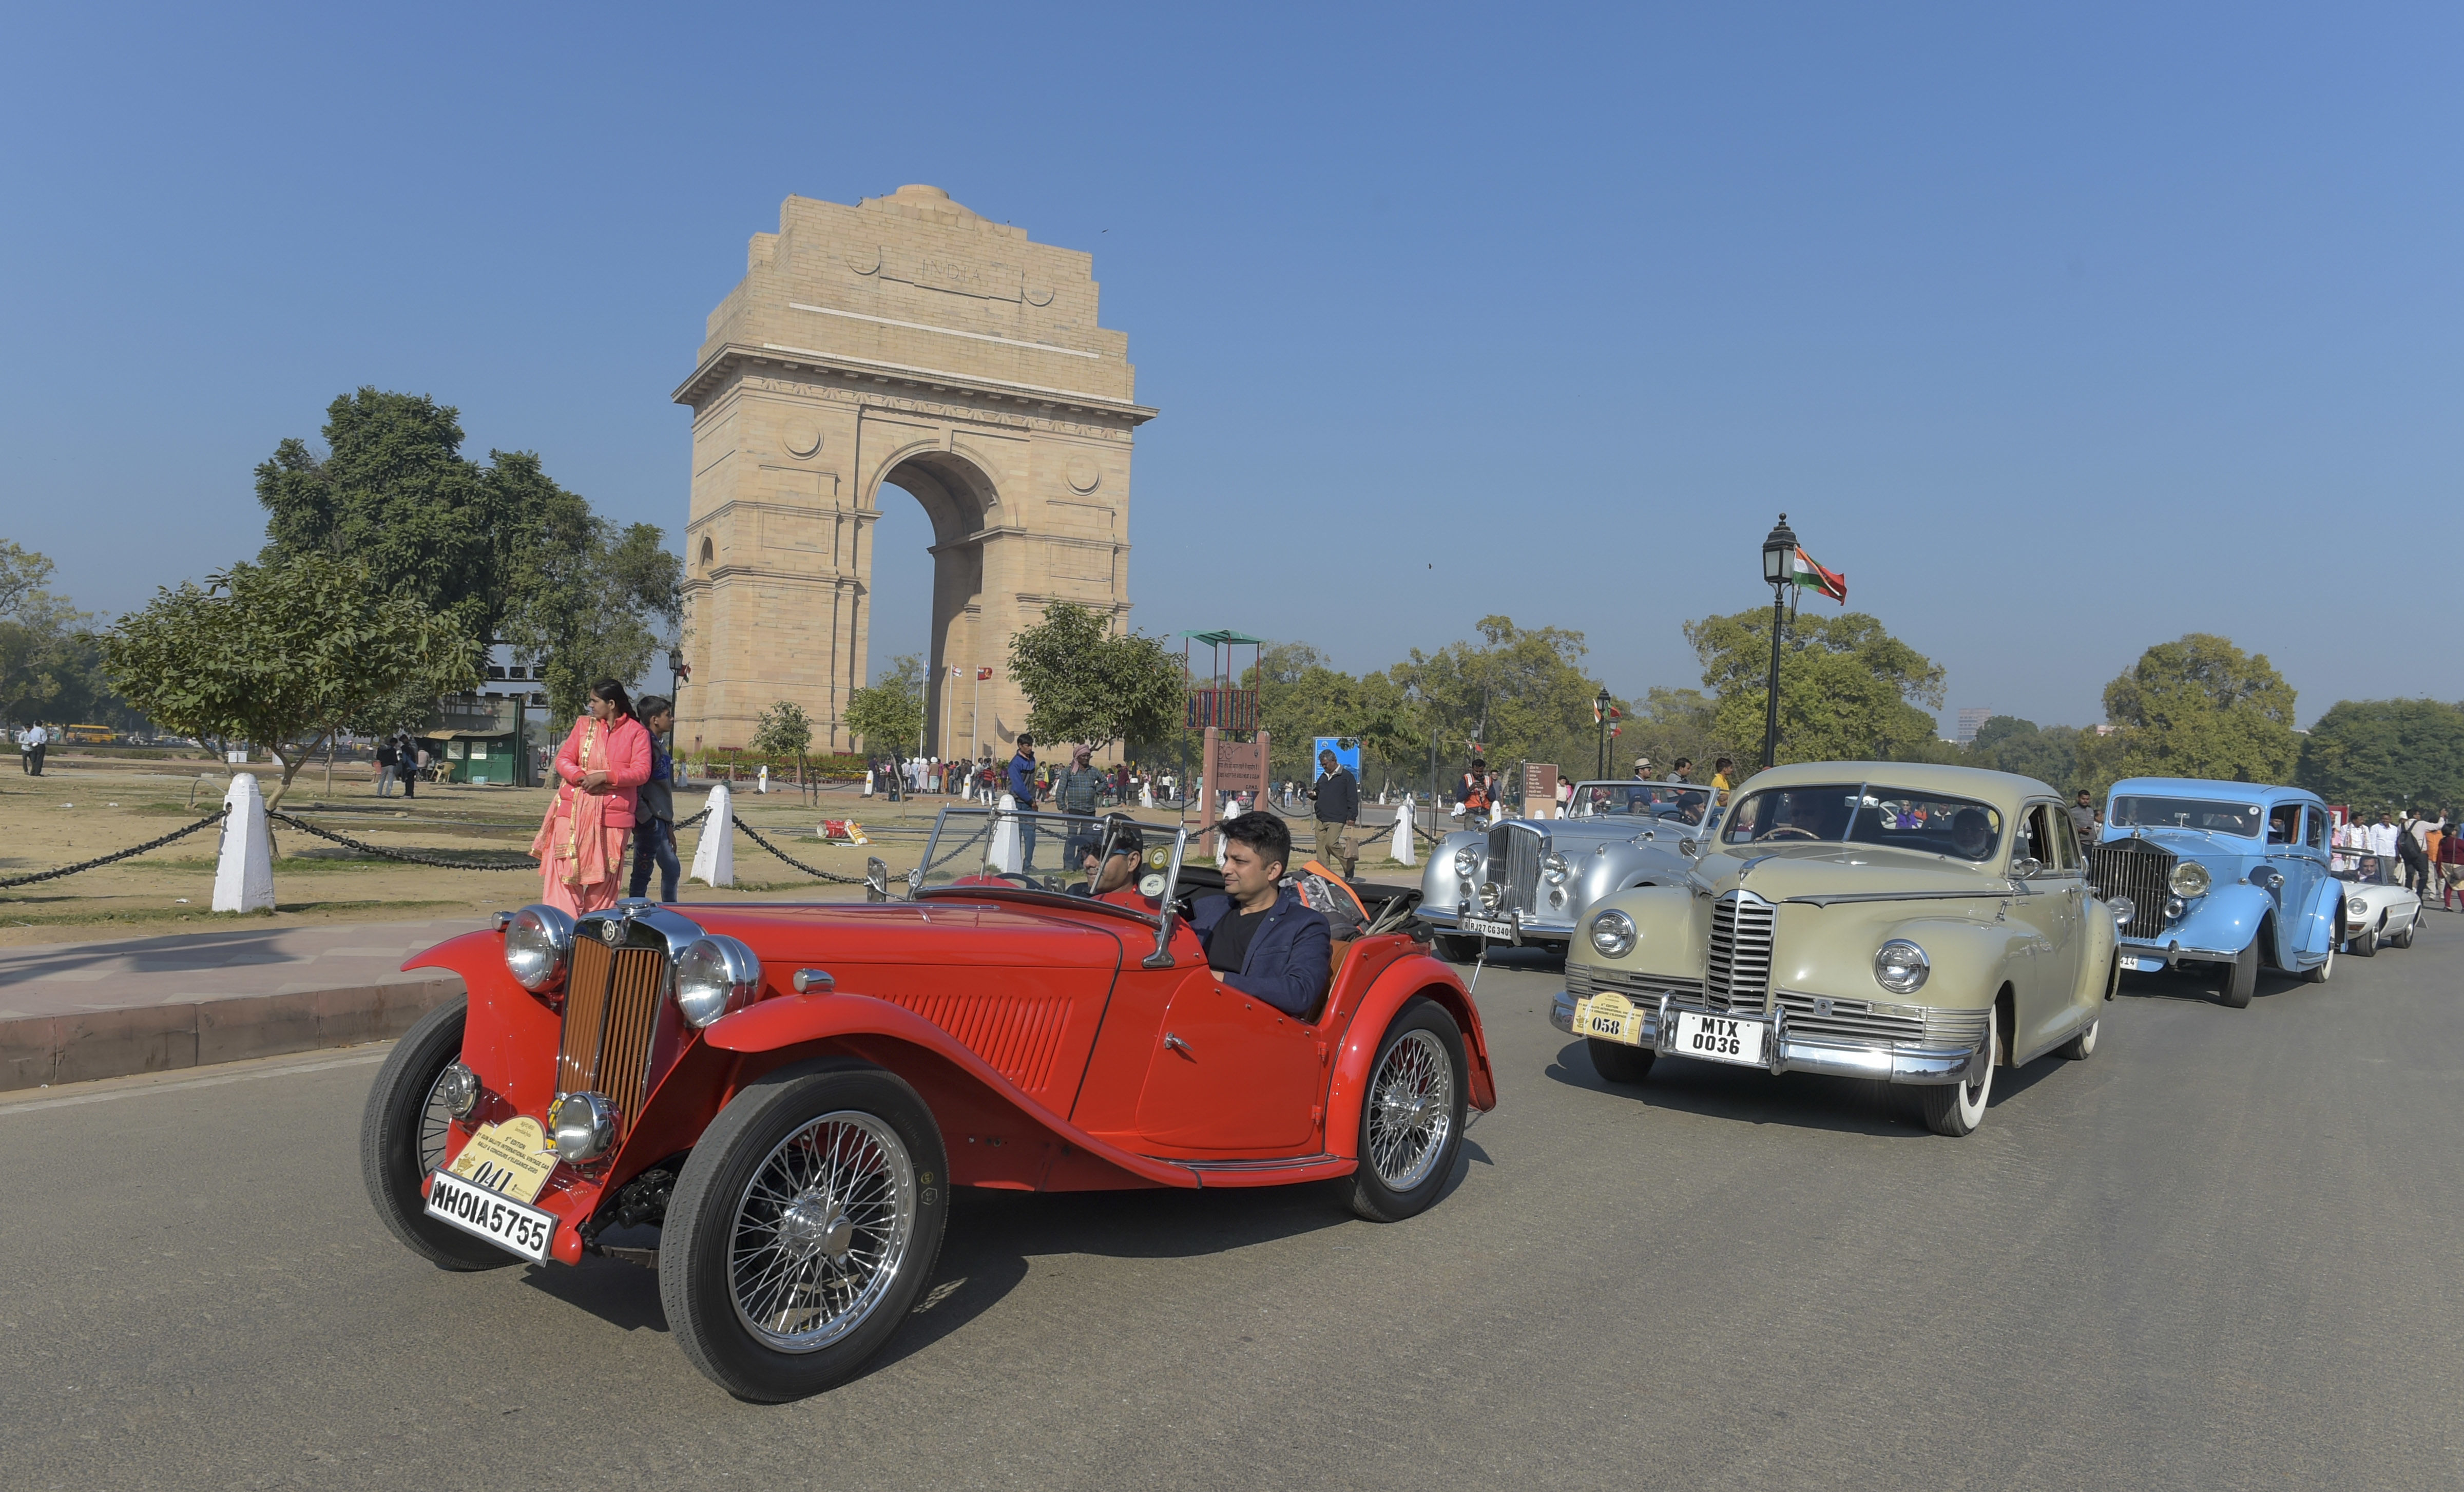 The Incredible India Rally will visit 17 cities covering 4,000 km and would mark the beginning of a new era for patrons of heritage motoring. (PTI)